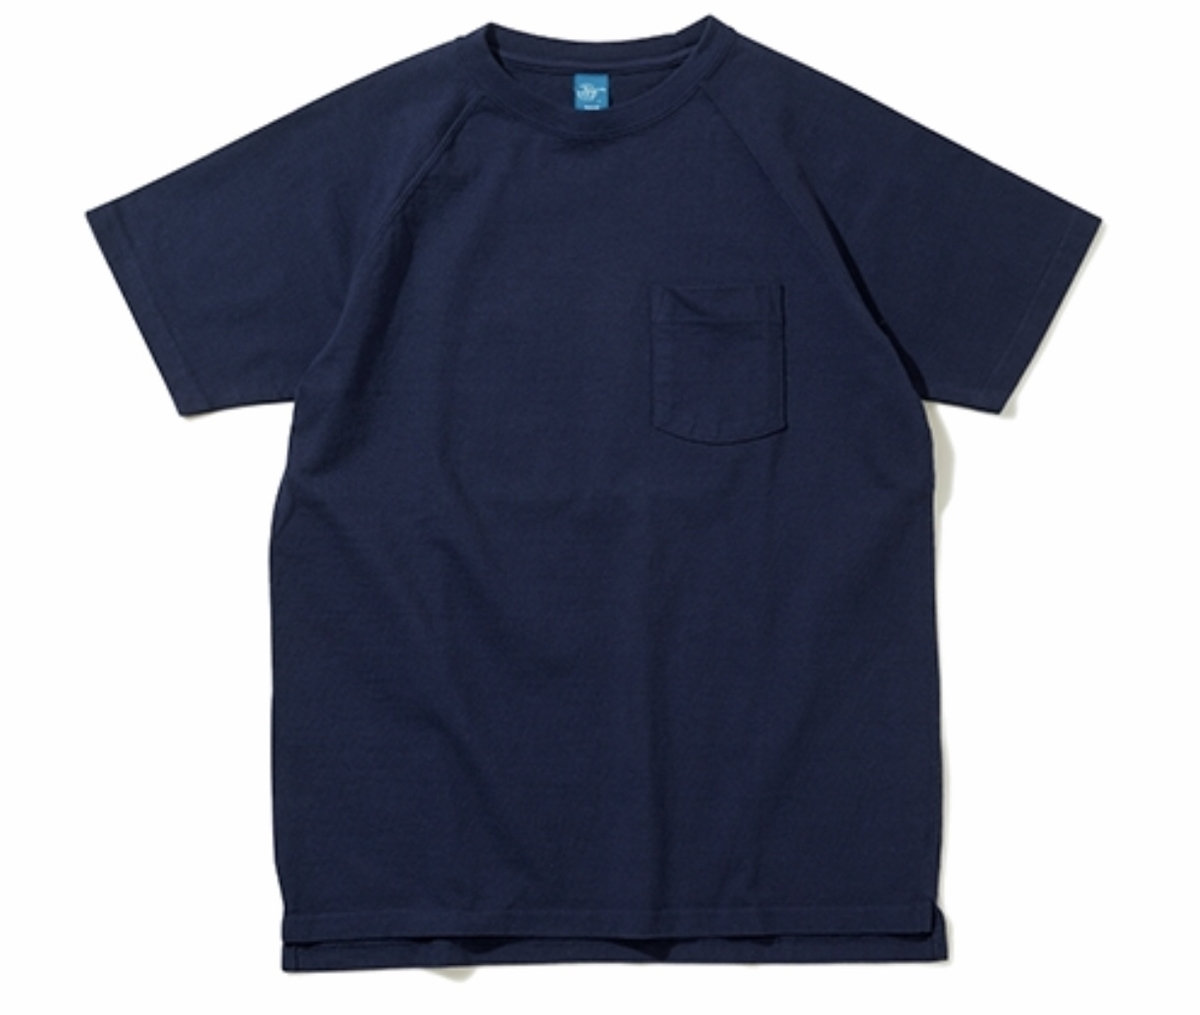 f:id:fortheshirt:20190510110801j:plain